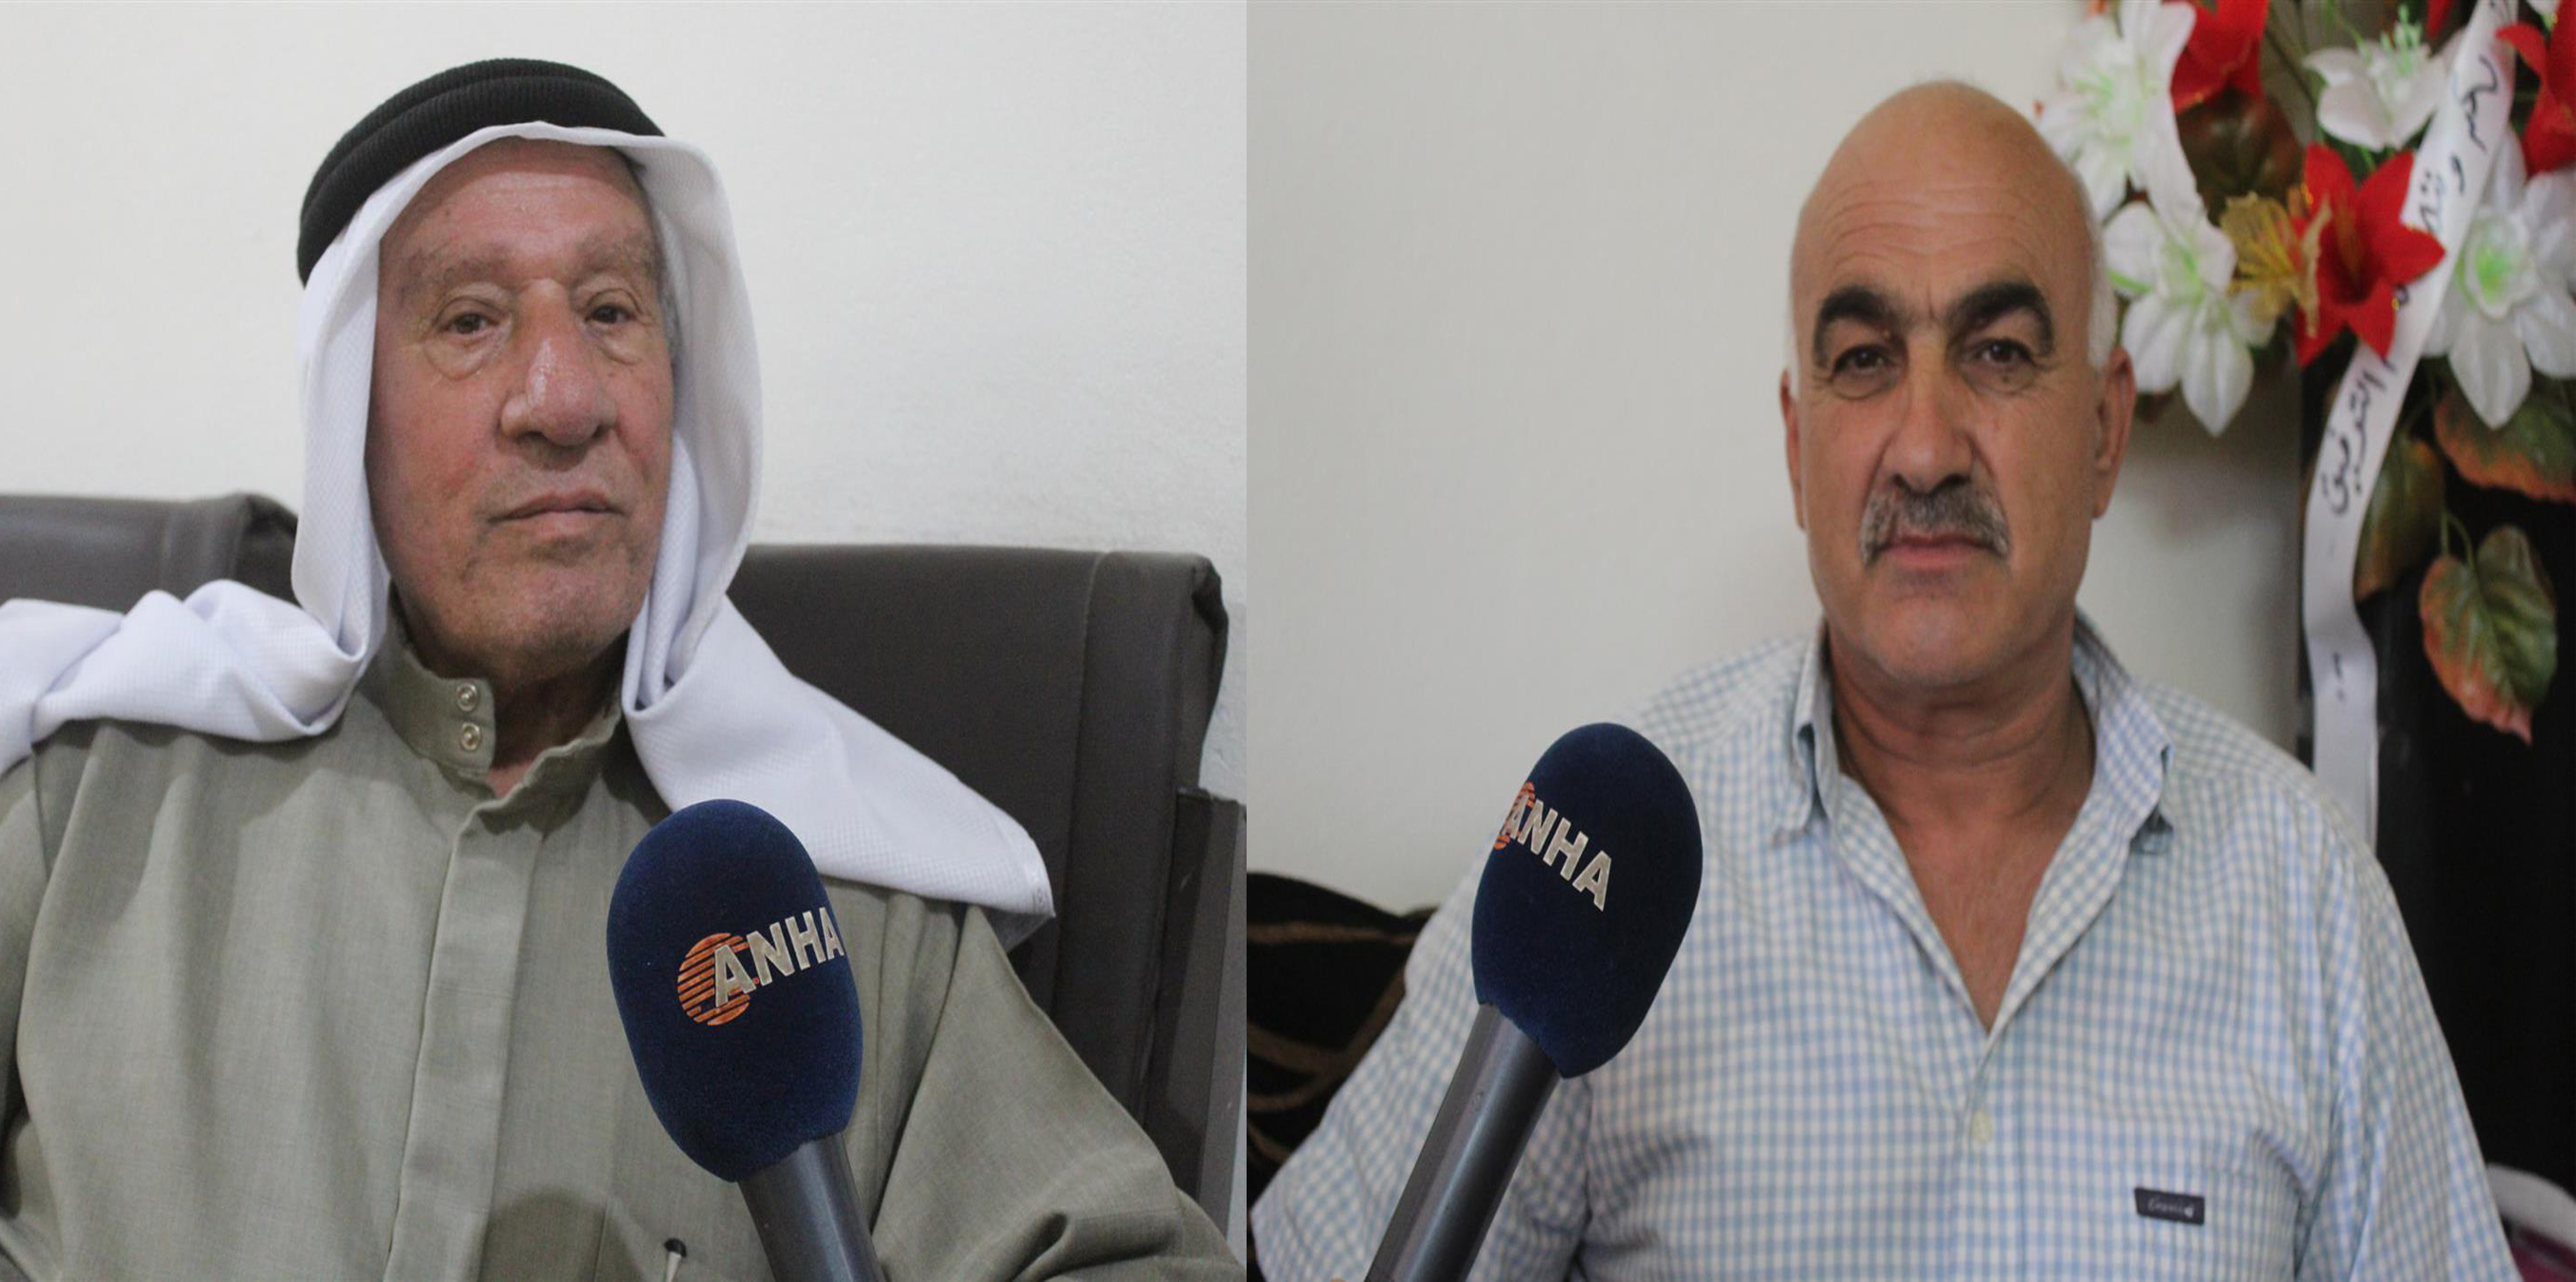 People of Girkê Legê: We derive determination from resistance of Leyla Guven, her comrades